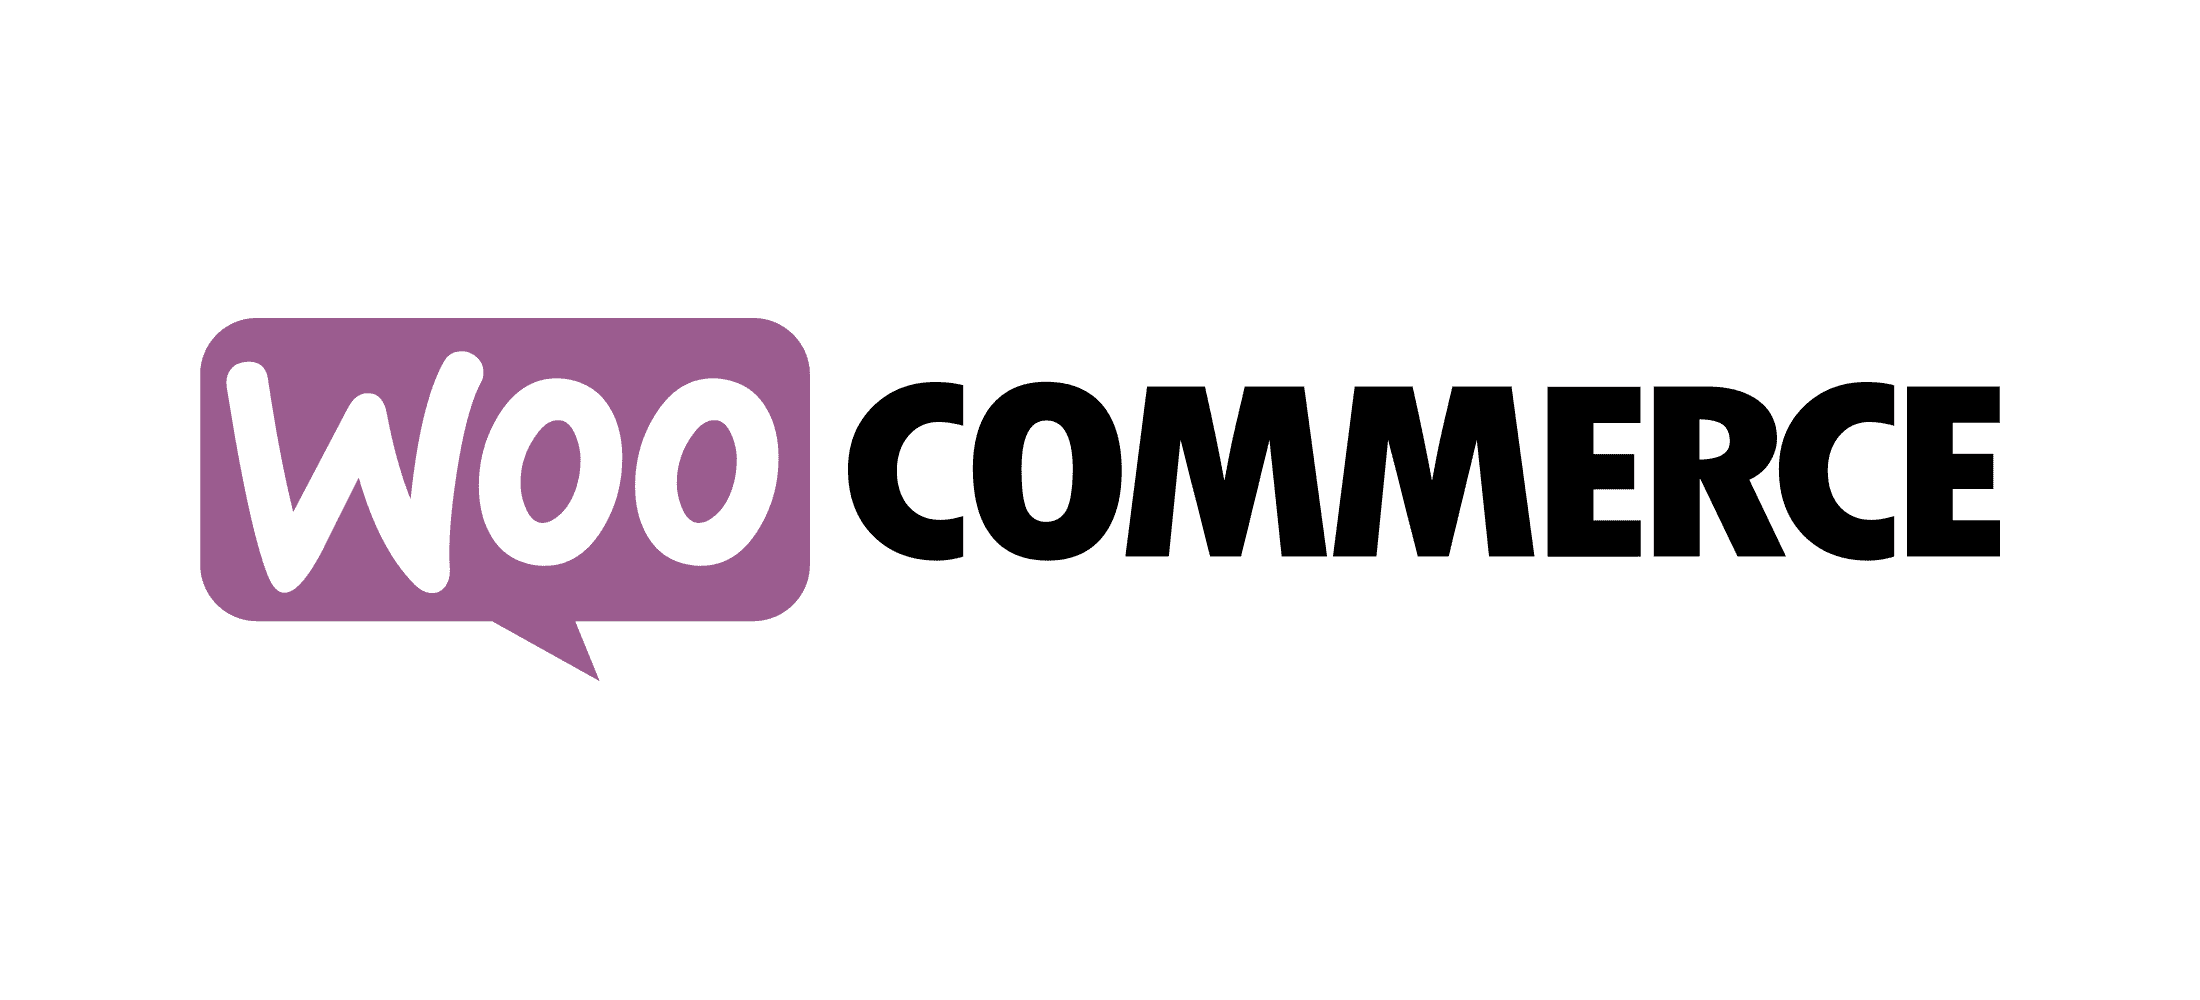 Why WooCommerce is so popular?